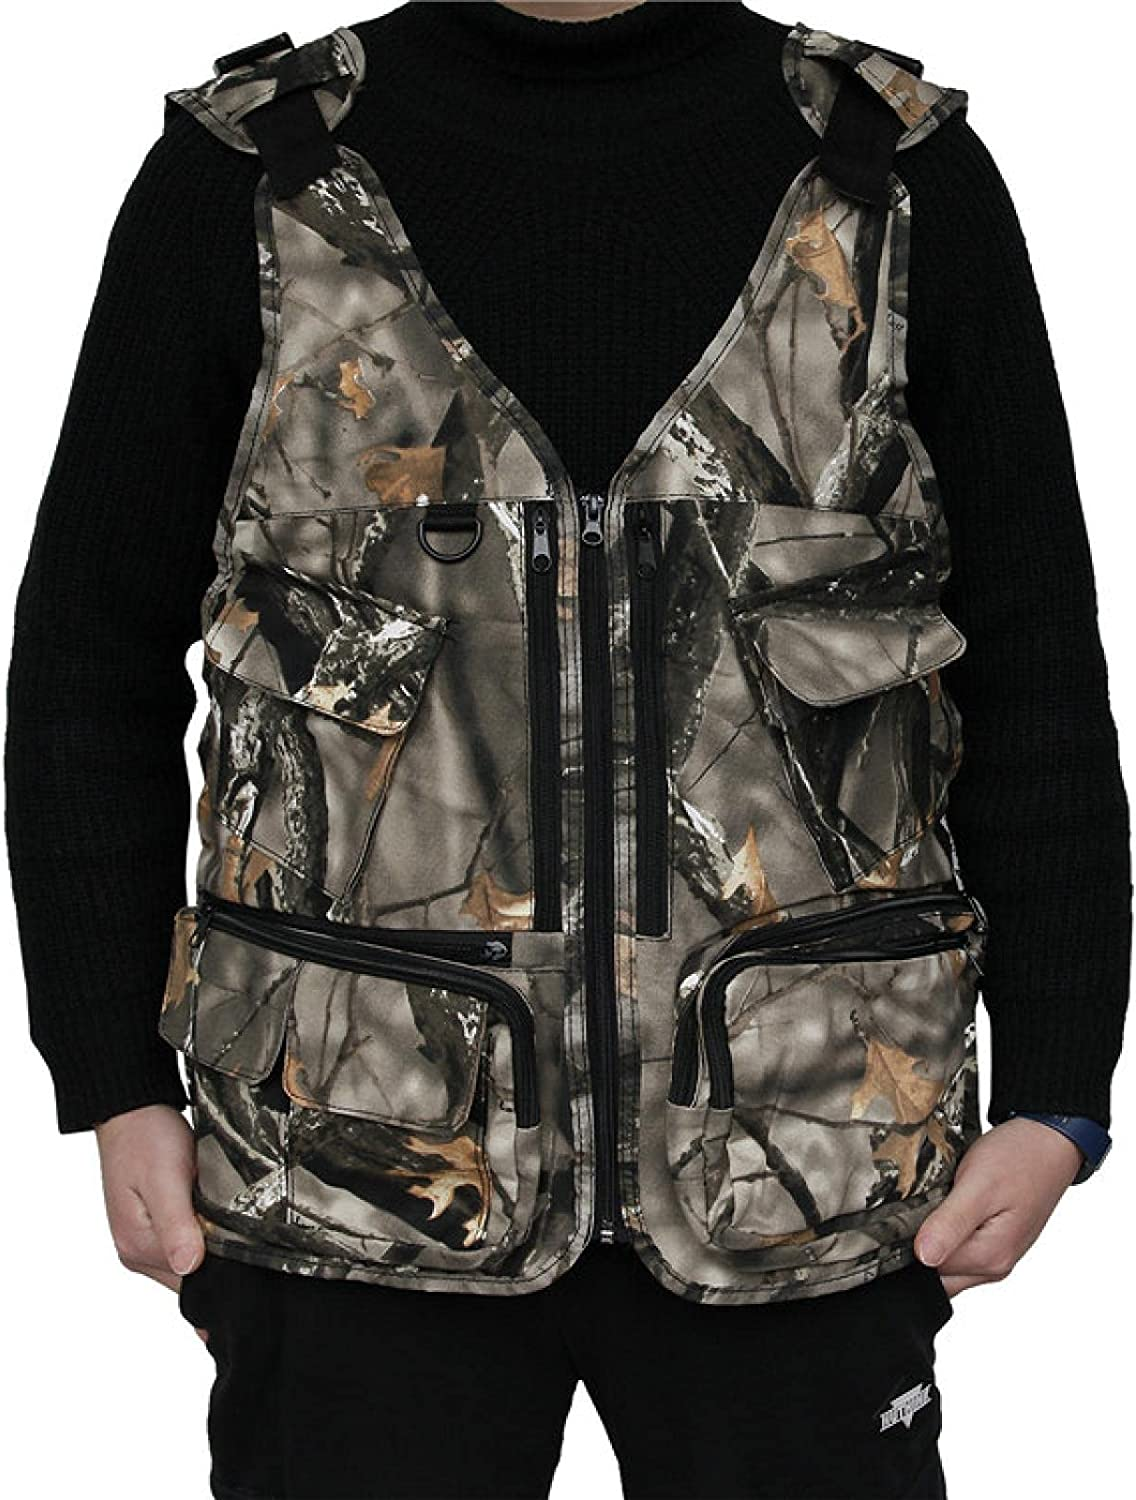 'N A' Outdoor Hunting Vest Max 80% Popularity OFF Multifunctional Cotton CS Camouflage